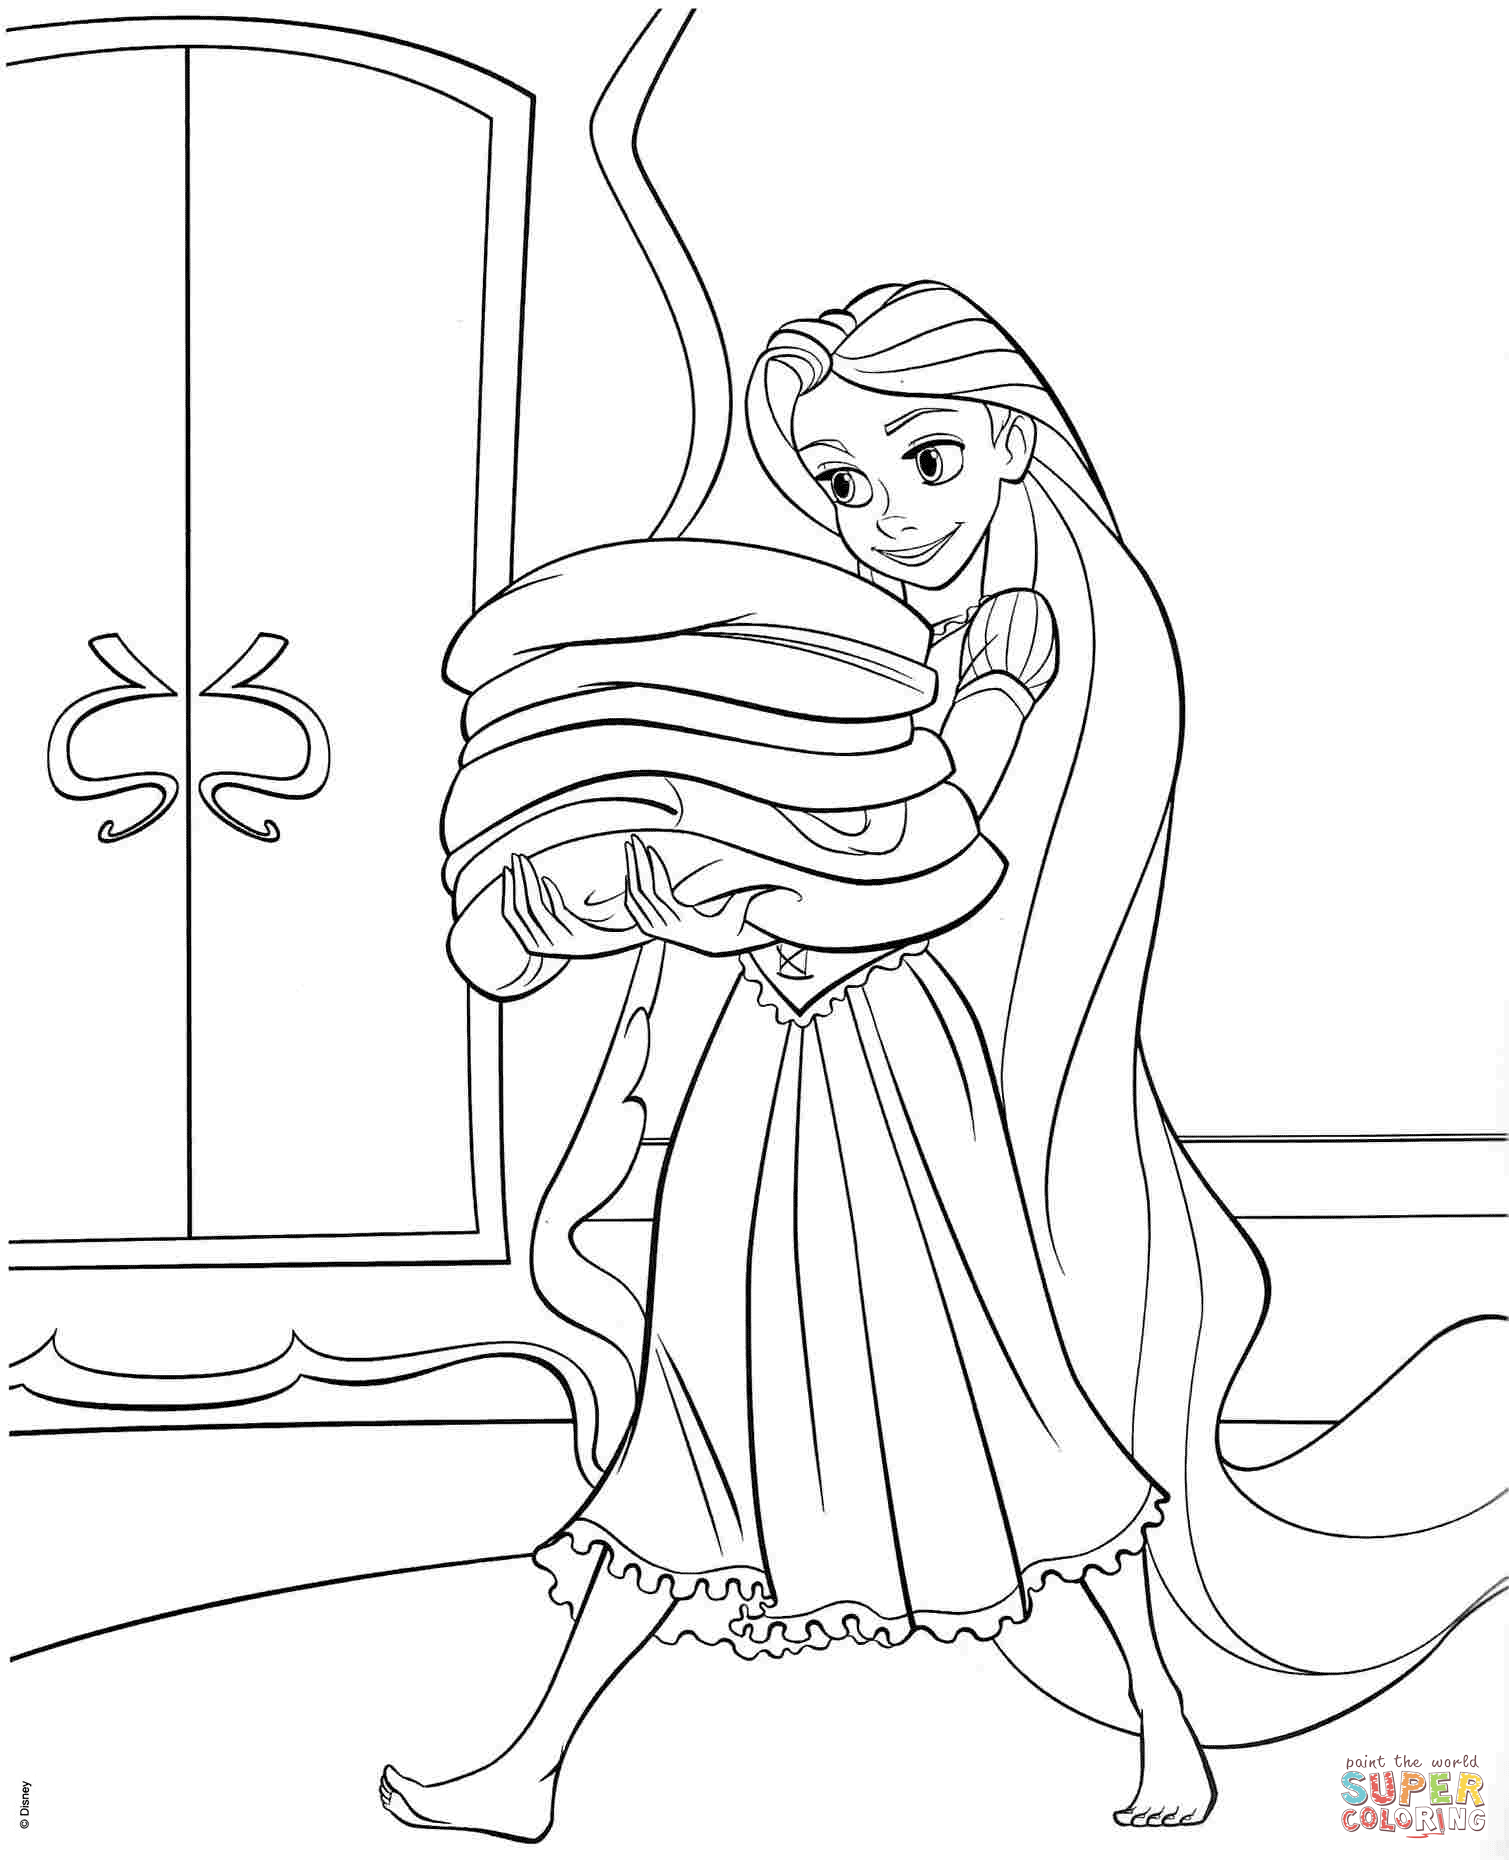 tangled coloring free printable tangled coloring pages for kids coloring tangled